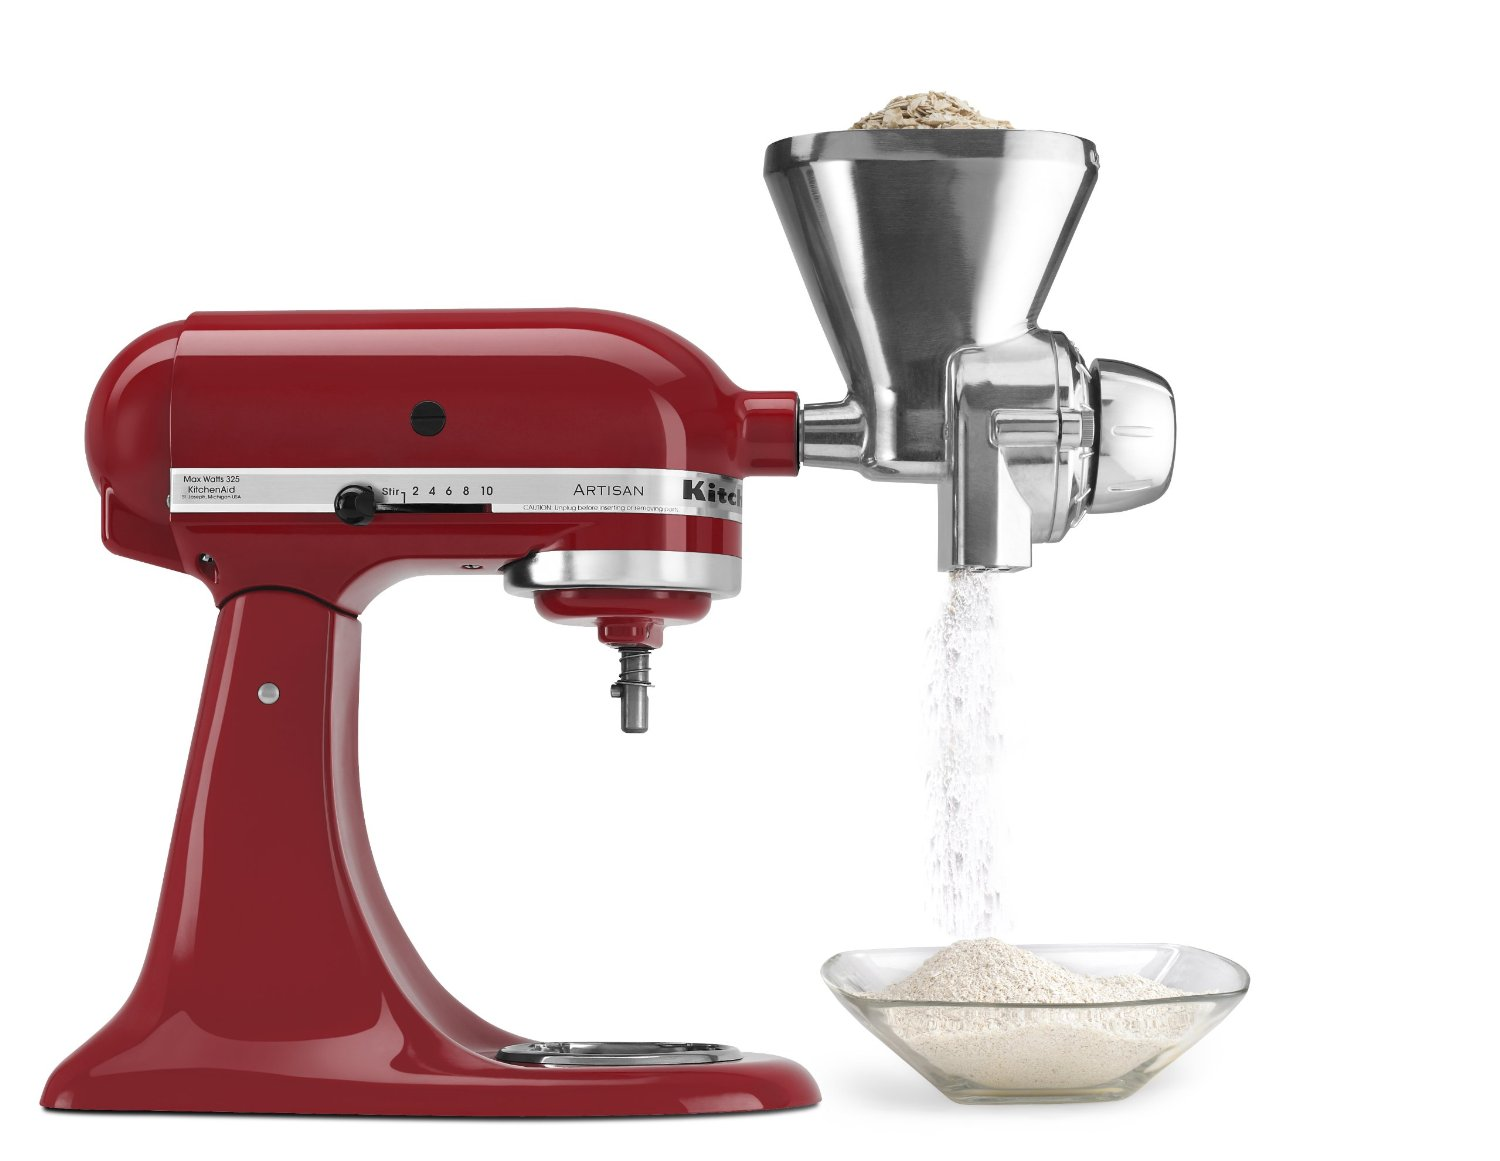 Kitchenaid Kgm Stand Mixer Grain Mill Attachment On Sale